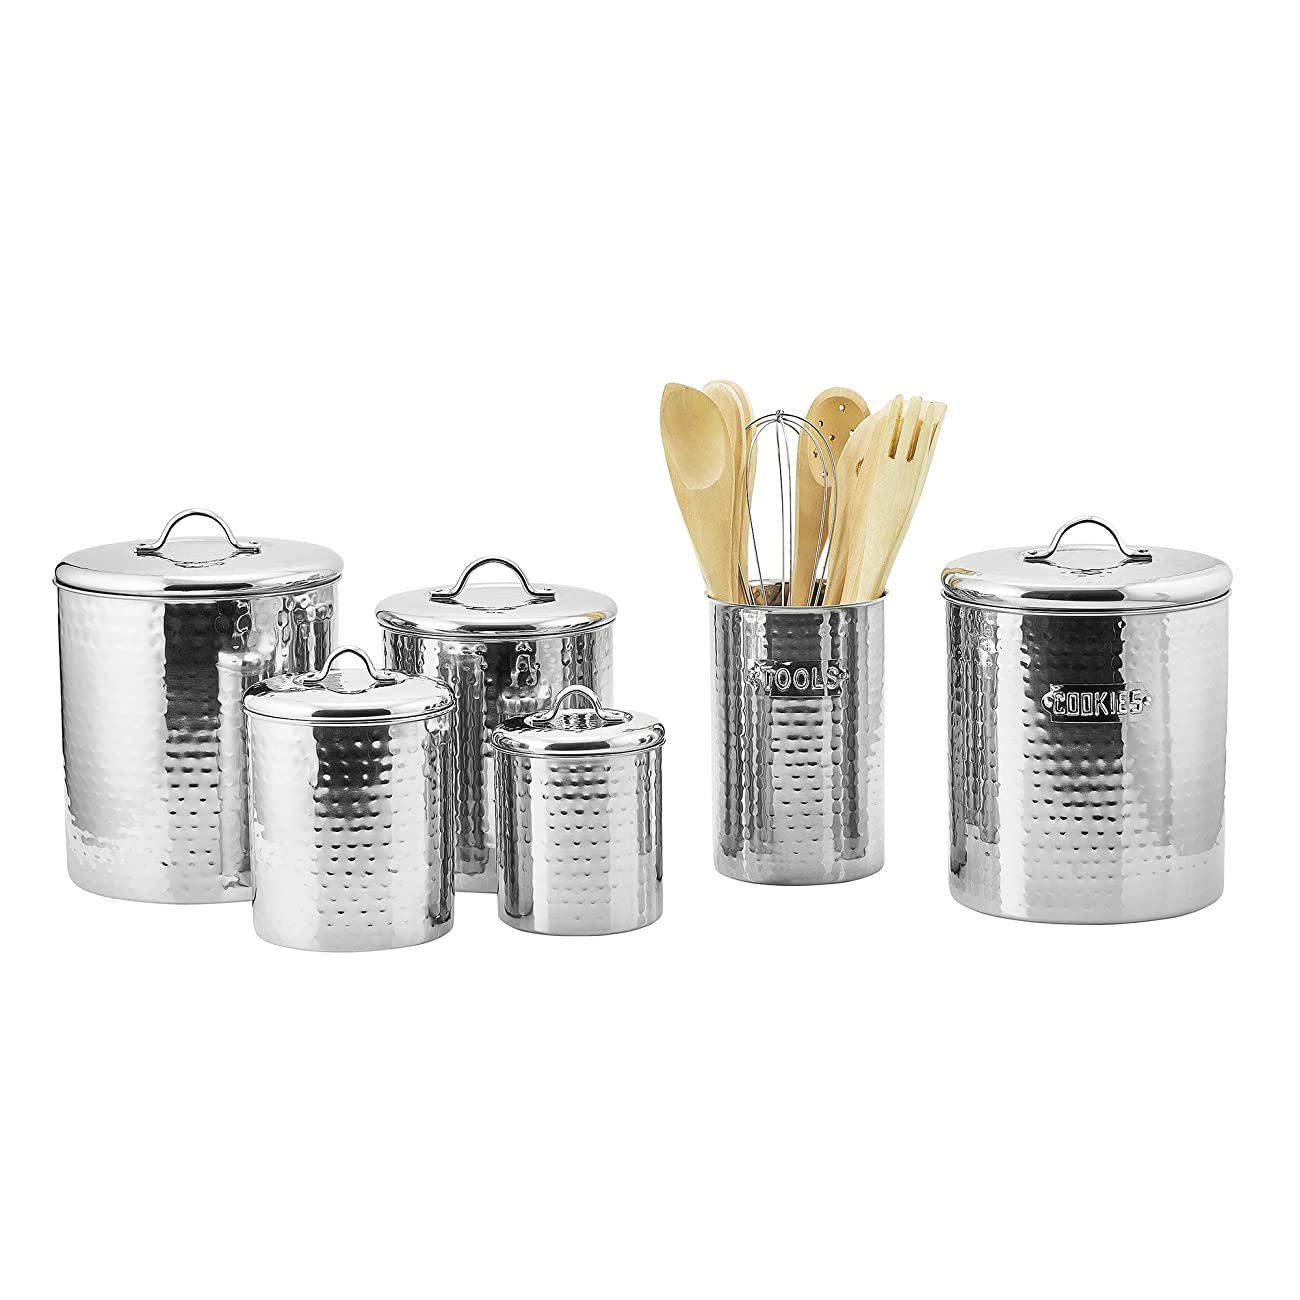 Old Dutch Stainless Steel Hammered 4-Piece Canister Set 1